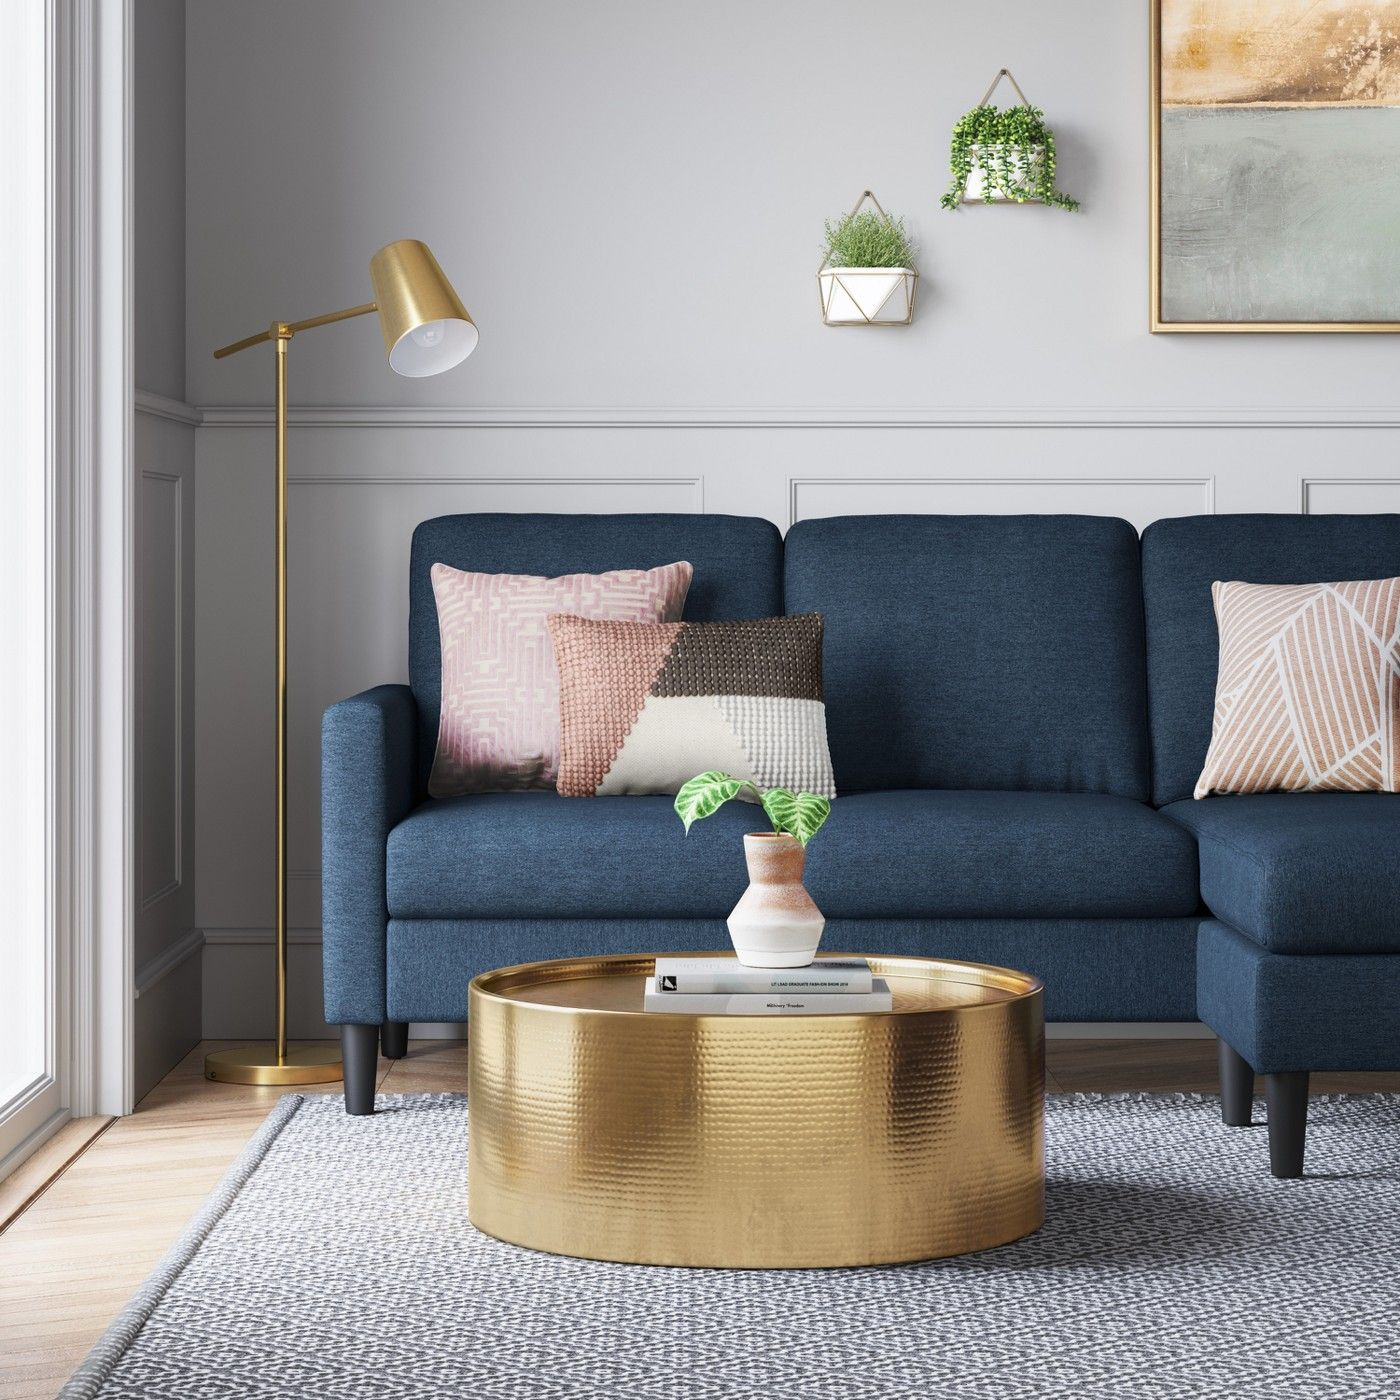 Blue Bellingham Sofa With Chaise From Target S Project 62 Line Livingroom Livingroomideas Co Blue Sofas Living Room Blue Couch Living Room Blue Sofa Living